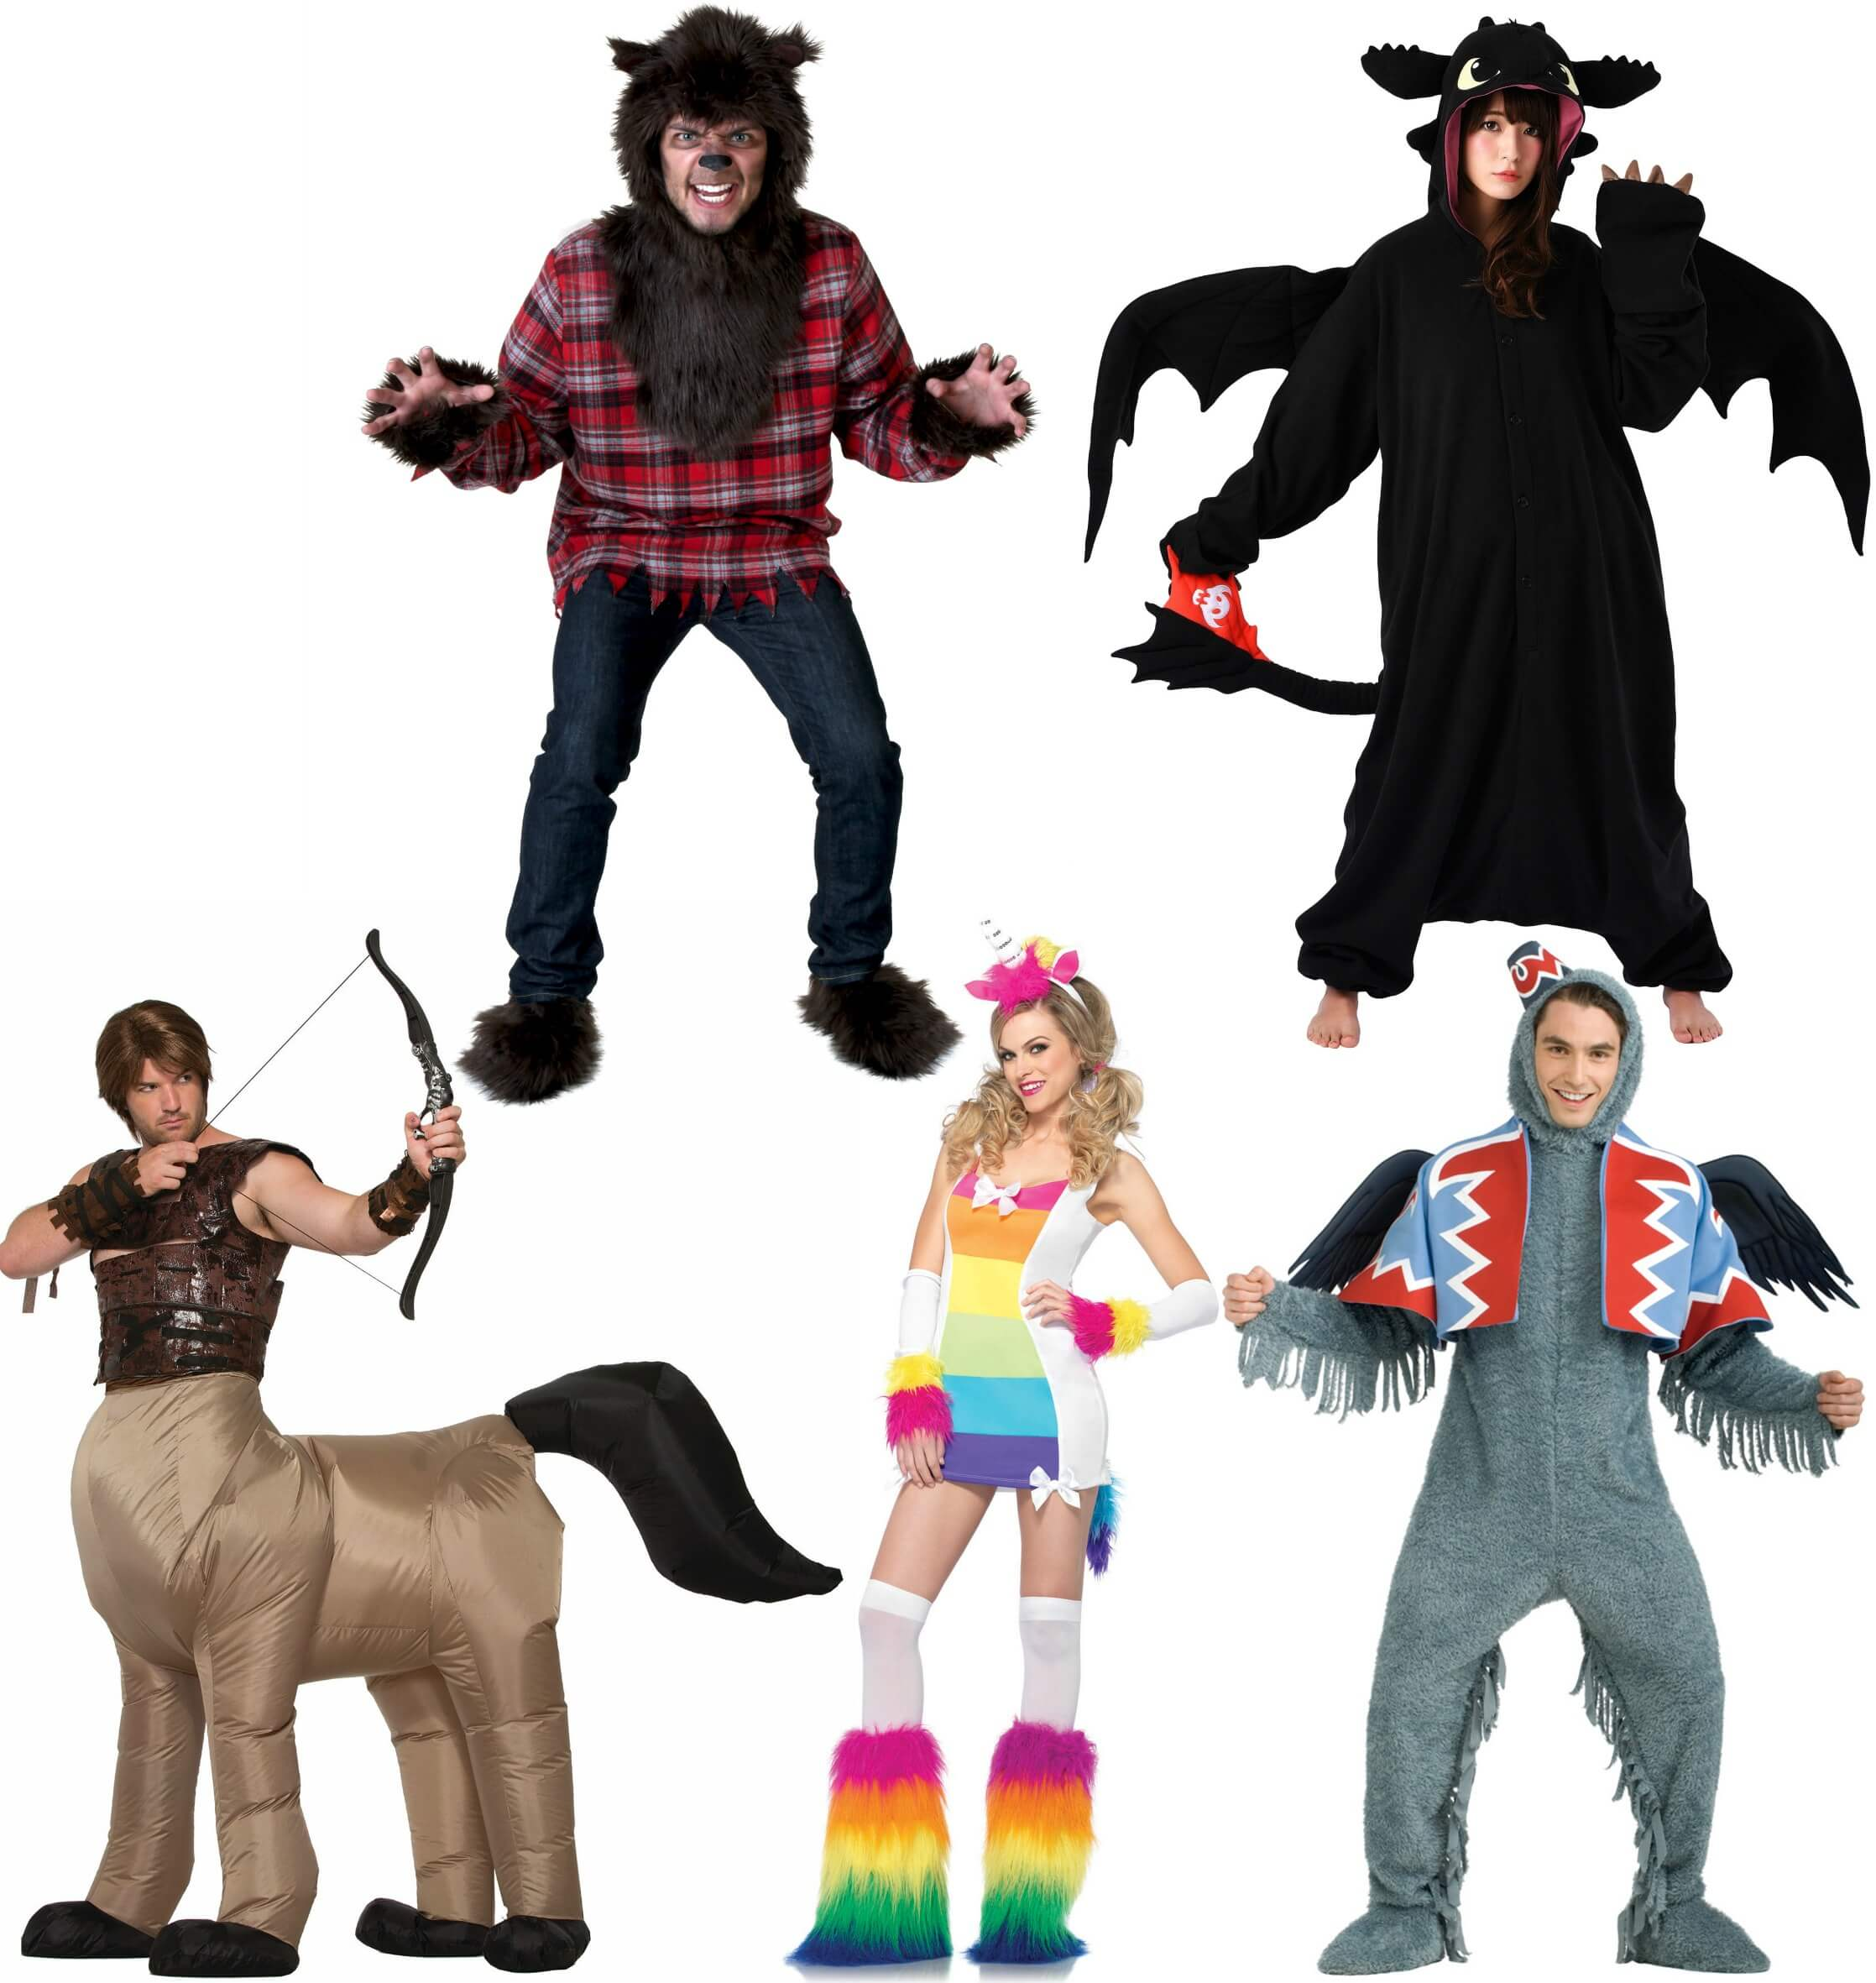 magical costumes - Mystical Halloween Costumes